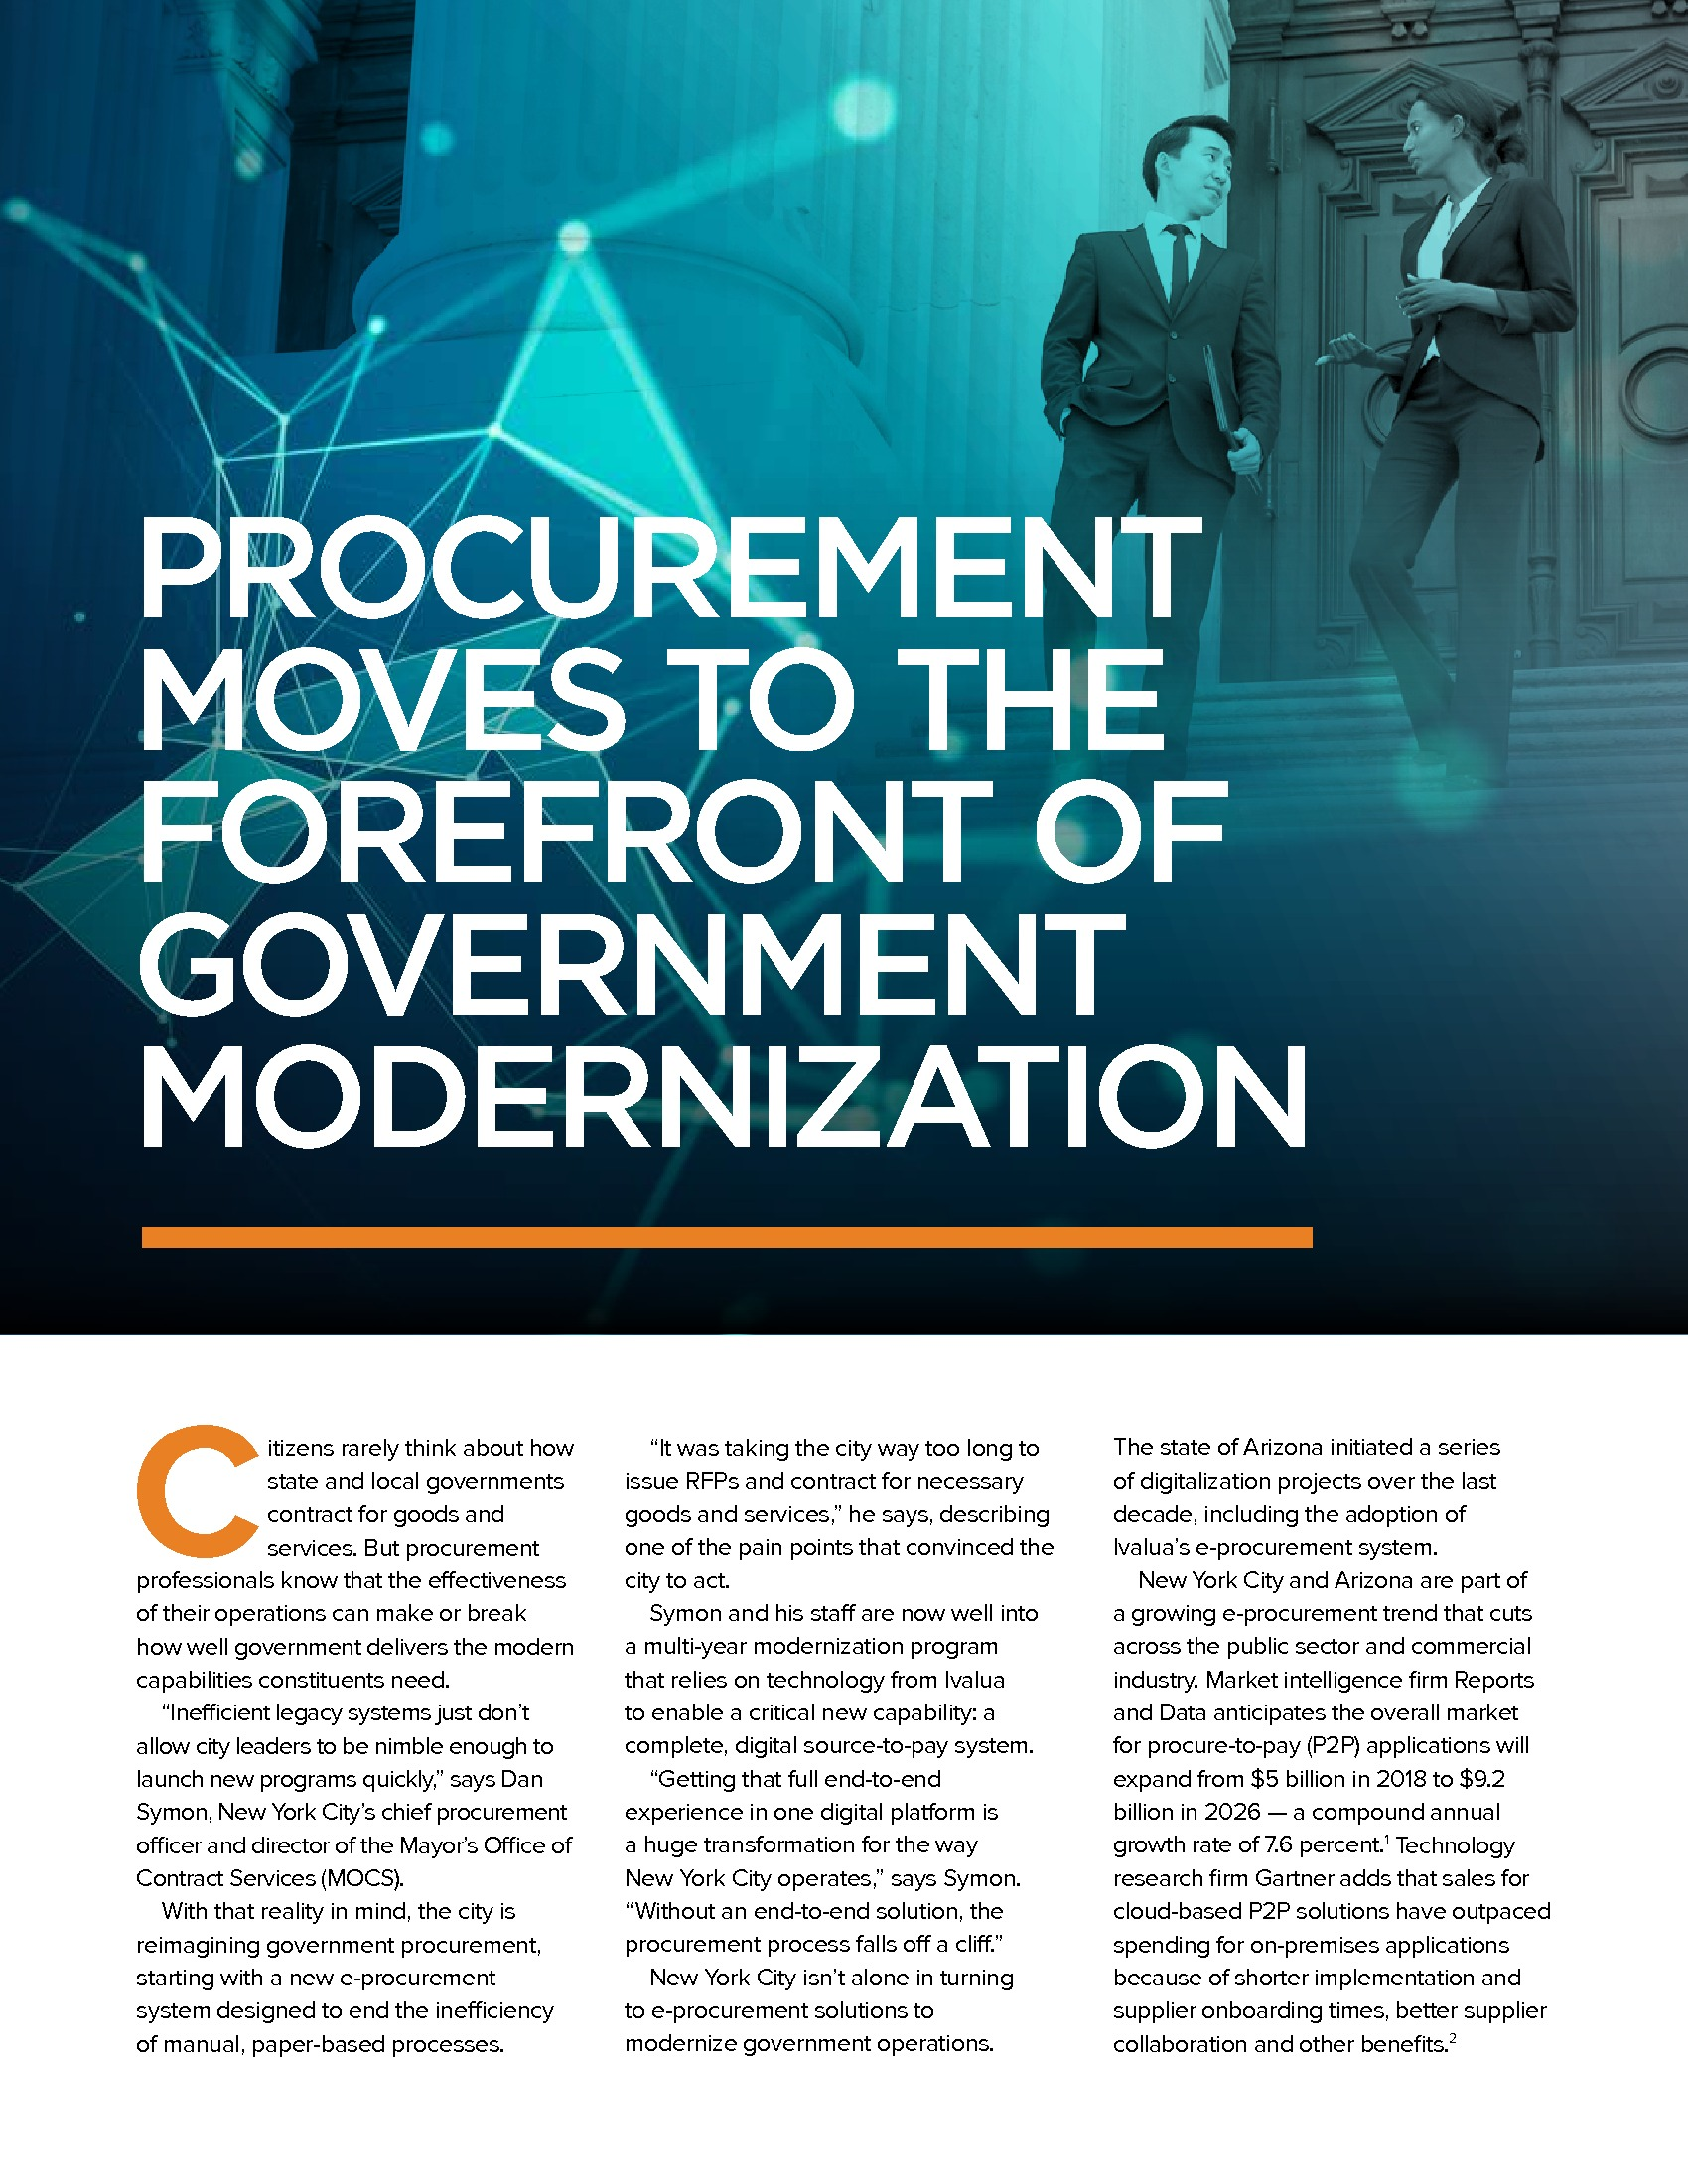 Procurement Moves to the Forefront of Government Modernization